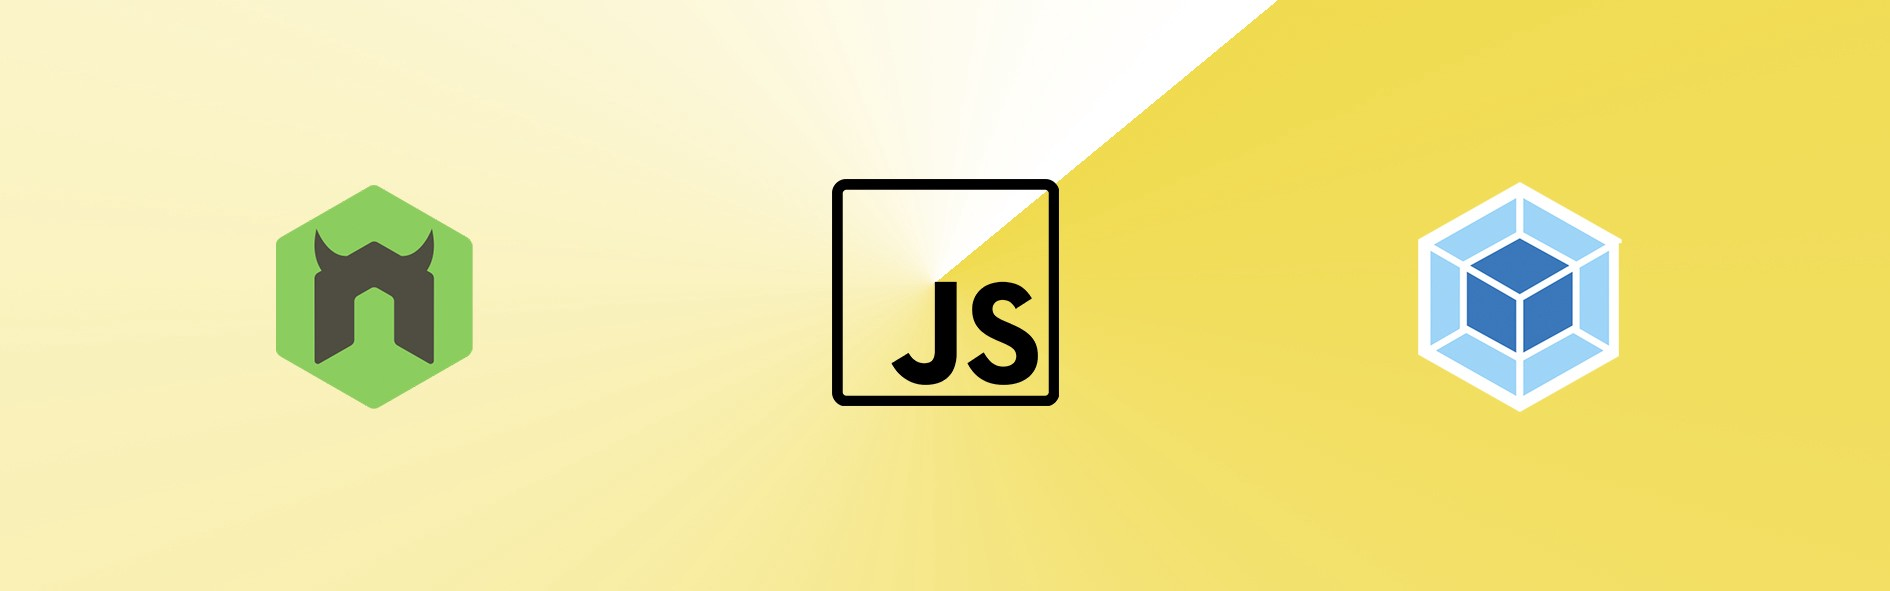 How to Auto reload a full-stack JavaScript project using nodemon and